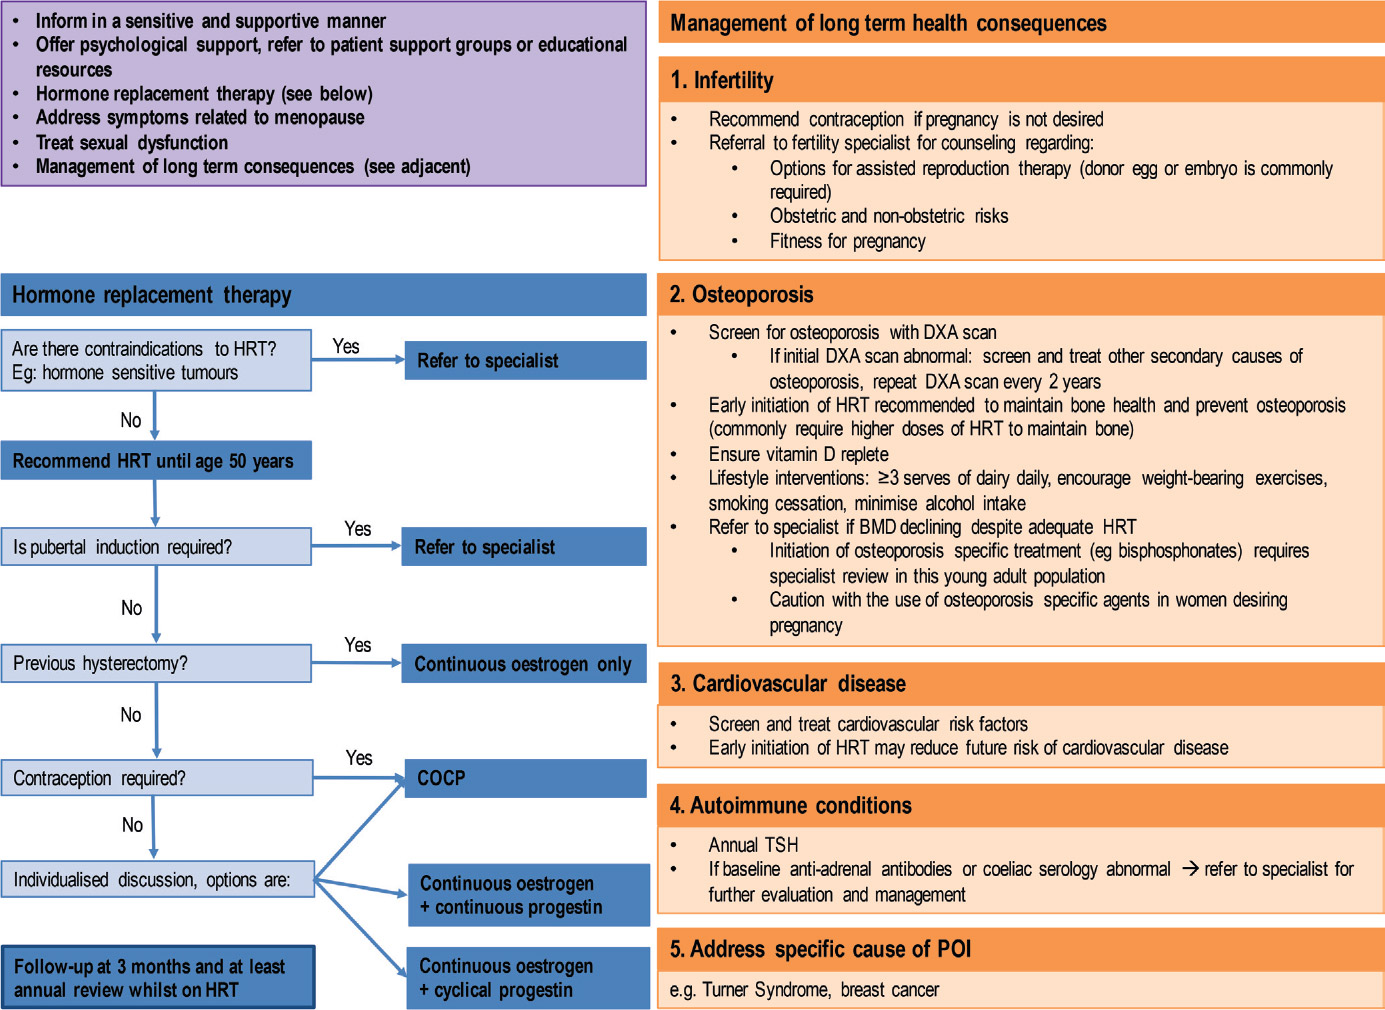 Figure 3 Premature Ovarian Insufficiency Management Guidelines